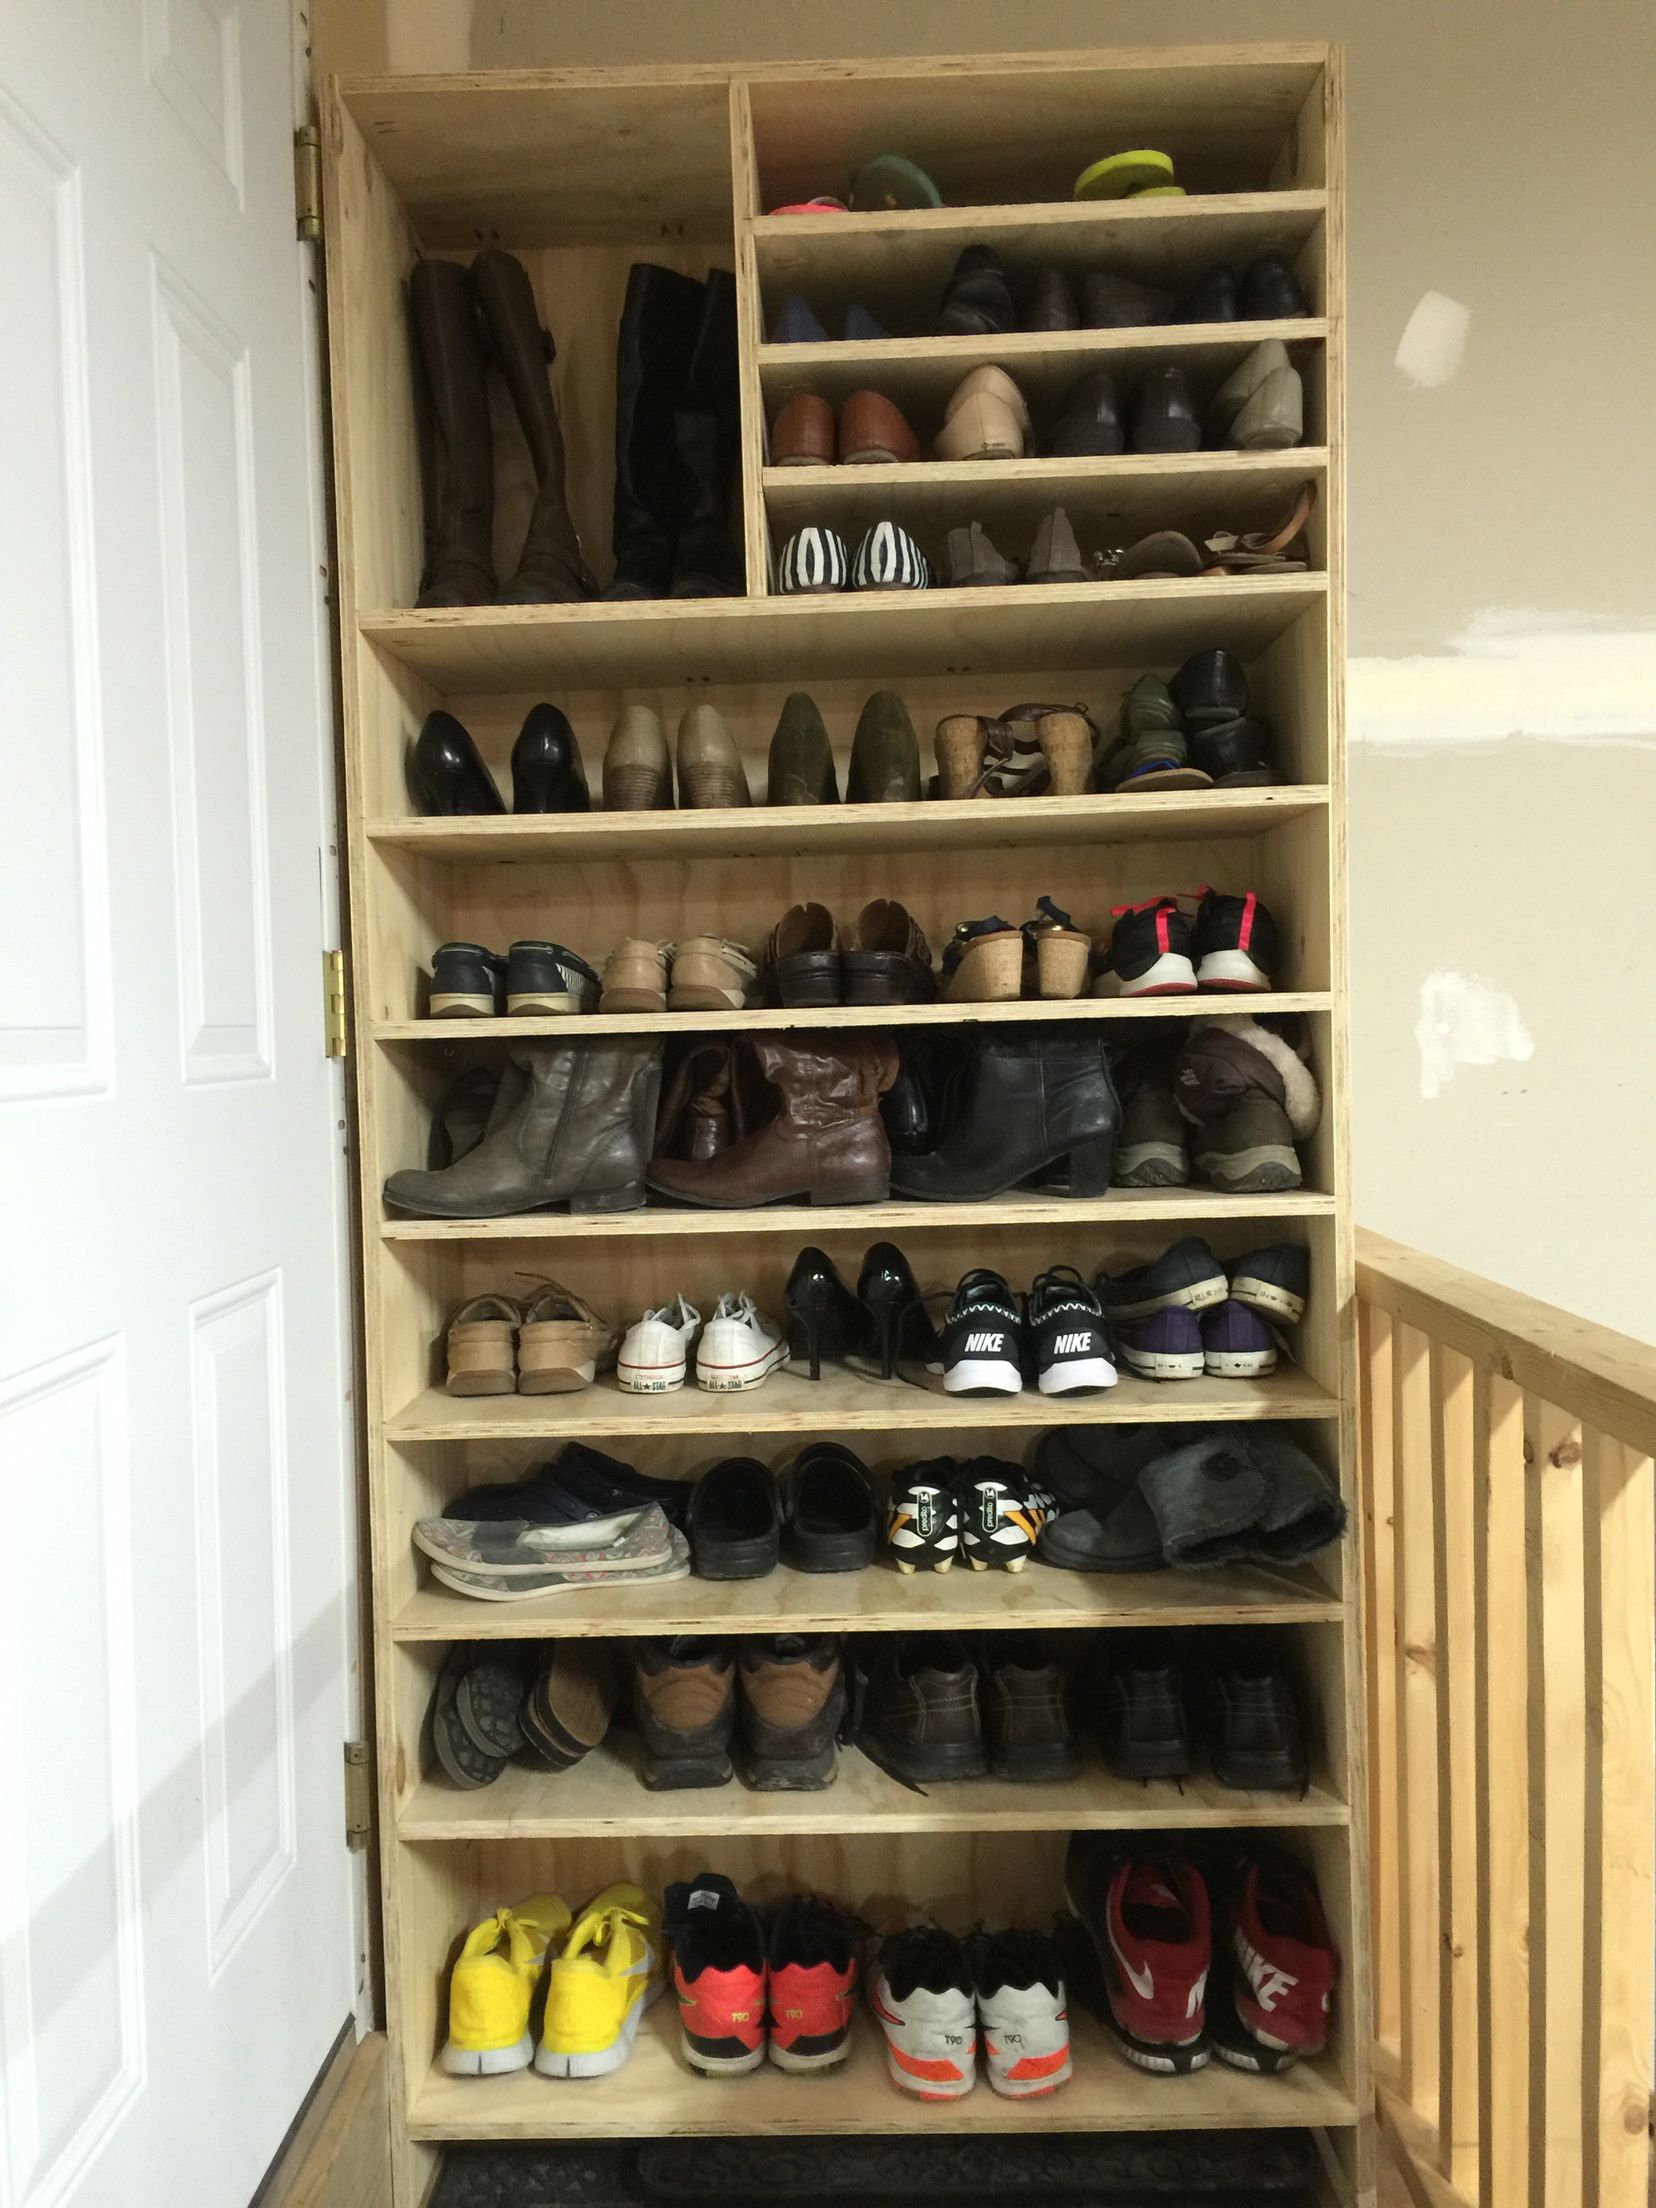 Some shoe organization isn't always a bad thing.